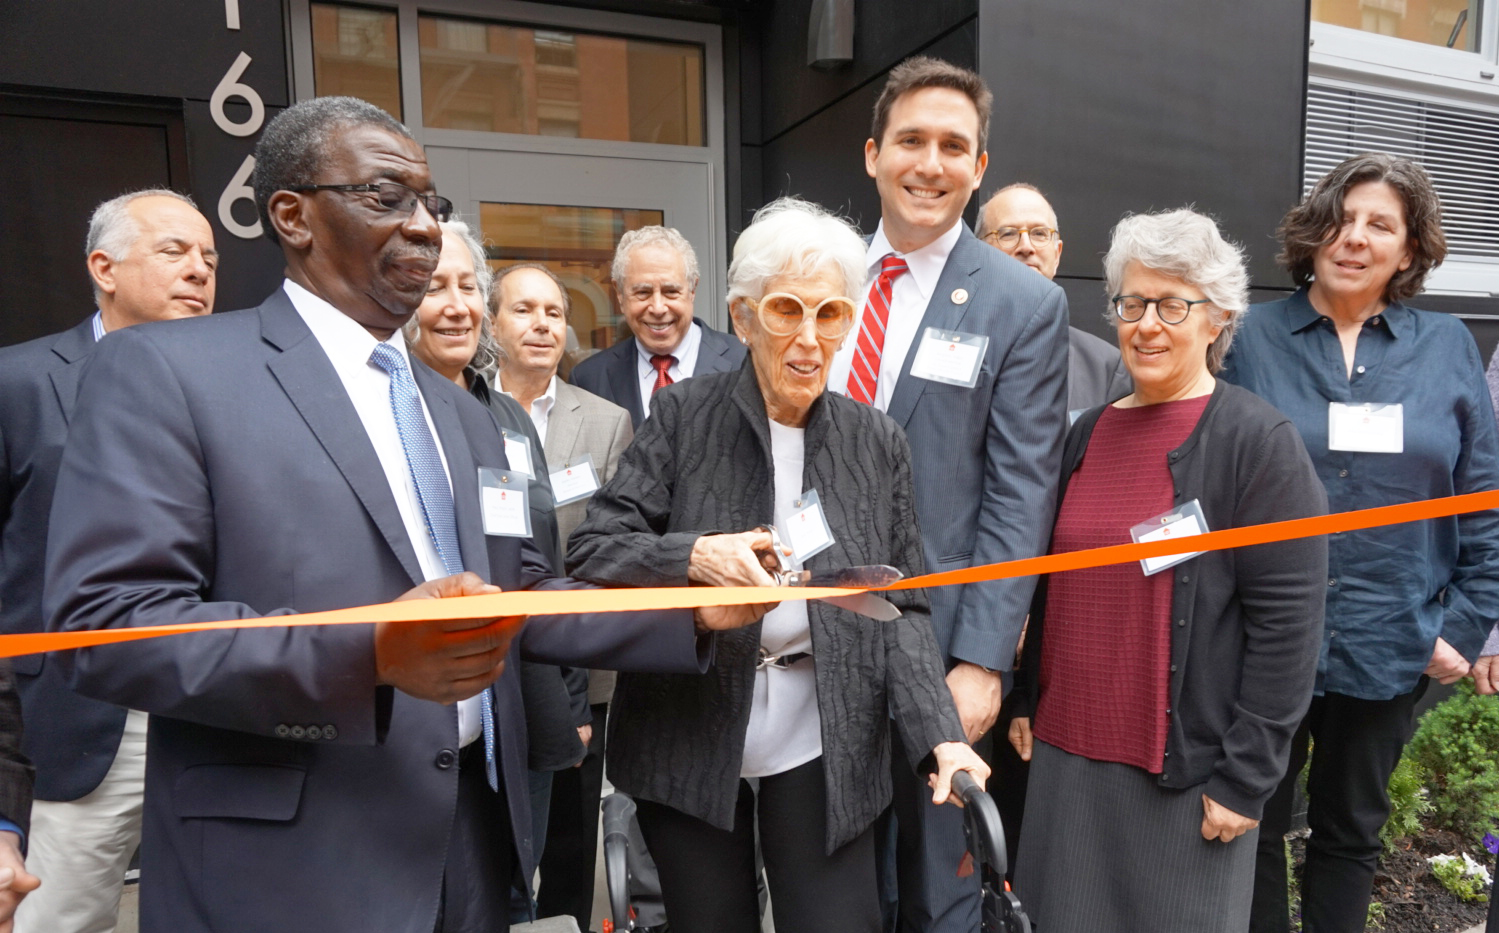 Howard Amron's widow, Joan Amron cuts the ribbon for the Howard Amron House with Council Ben Kallos,Urban Pathways CEO Fred Shack, family and board members looking on.